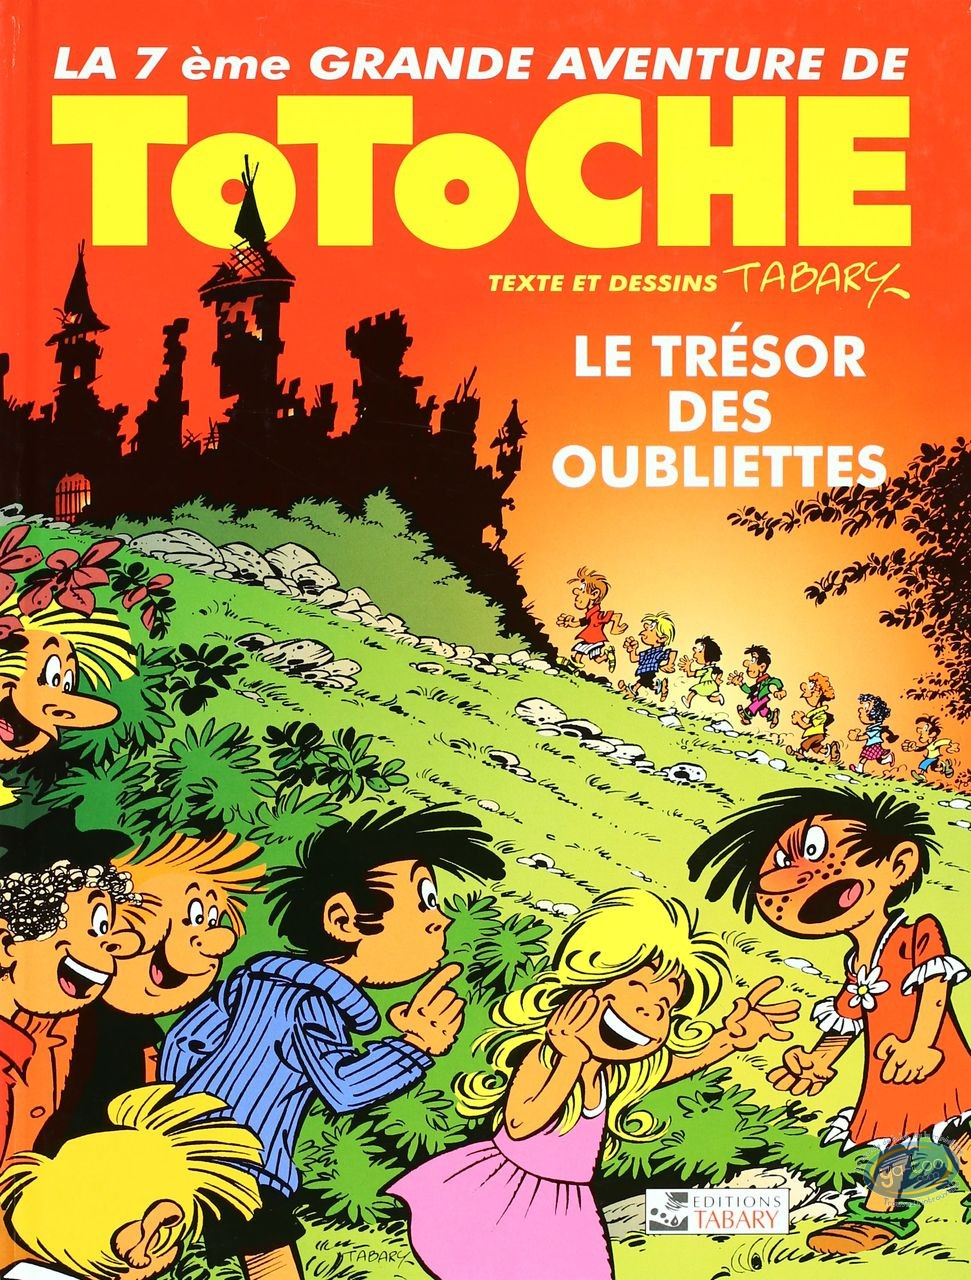 Reduced price European comic books, Totoche : The treasure of dungeon - The great adventures of Totoche Volume 7